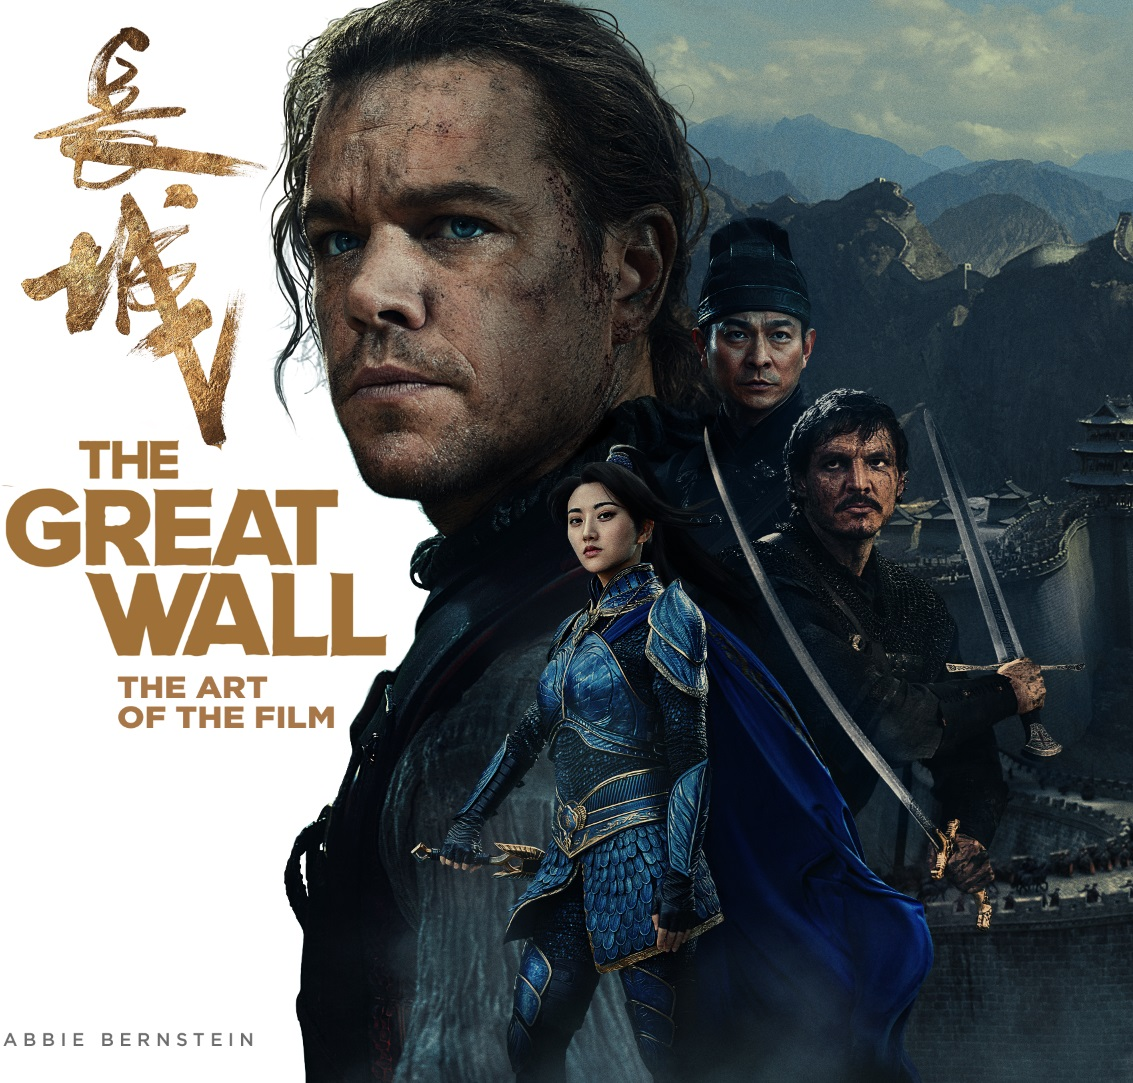 The Great Wall: The Art of the Film art east